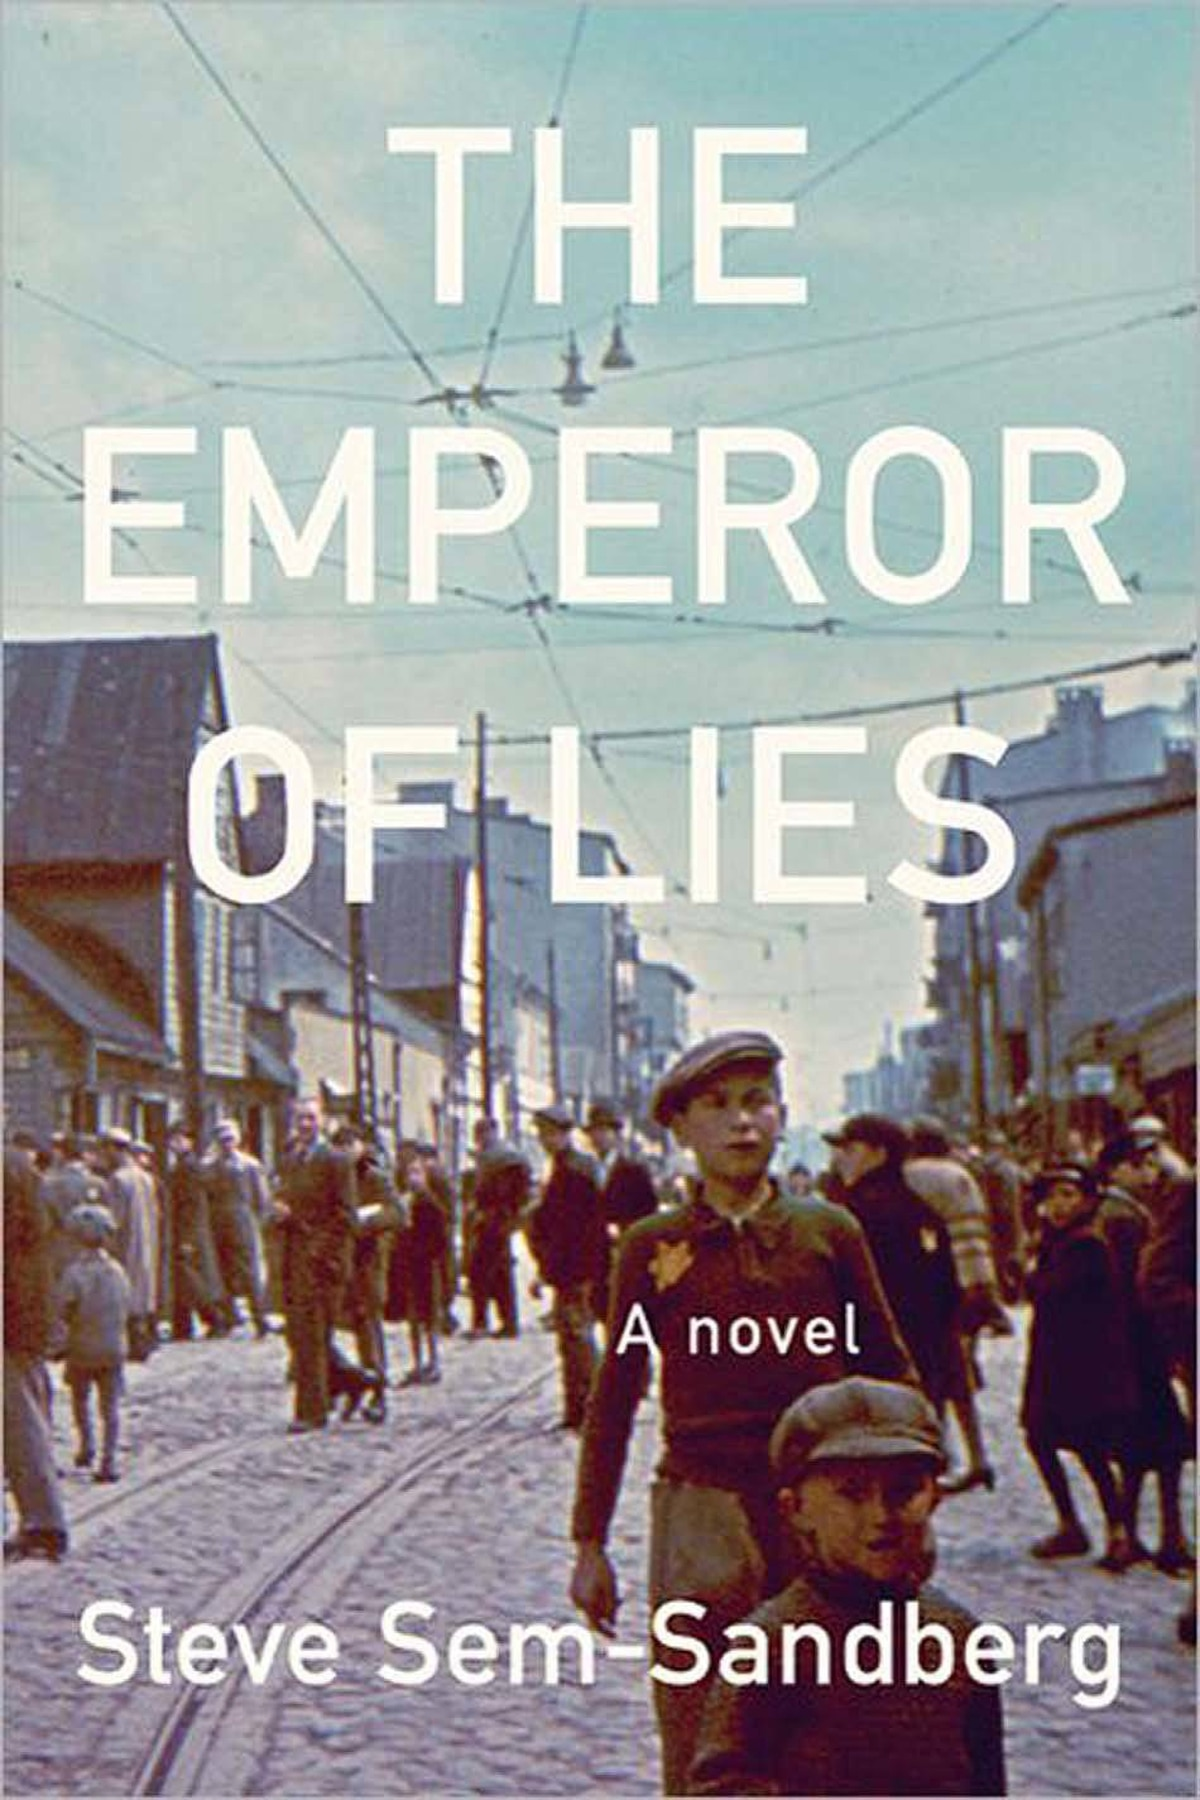 THE EMPEROR OF LIES By Steve Sem-Sandberg (Anansi) This brilliantly constructed novel, massive, detailed, teeming with characters, unfolds from 1940, when the Lodz Ghetto was created by the occupying Germans, to 1944, when the last of its inhabitants were deported to the death camps. During those few years, the ghetto was ruled with ruthless cruelty by Mordechai Chaim Rumkowski. – Anna Porter